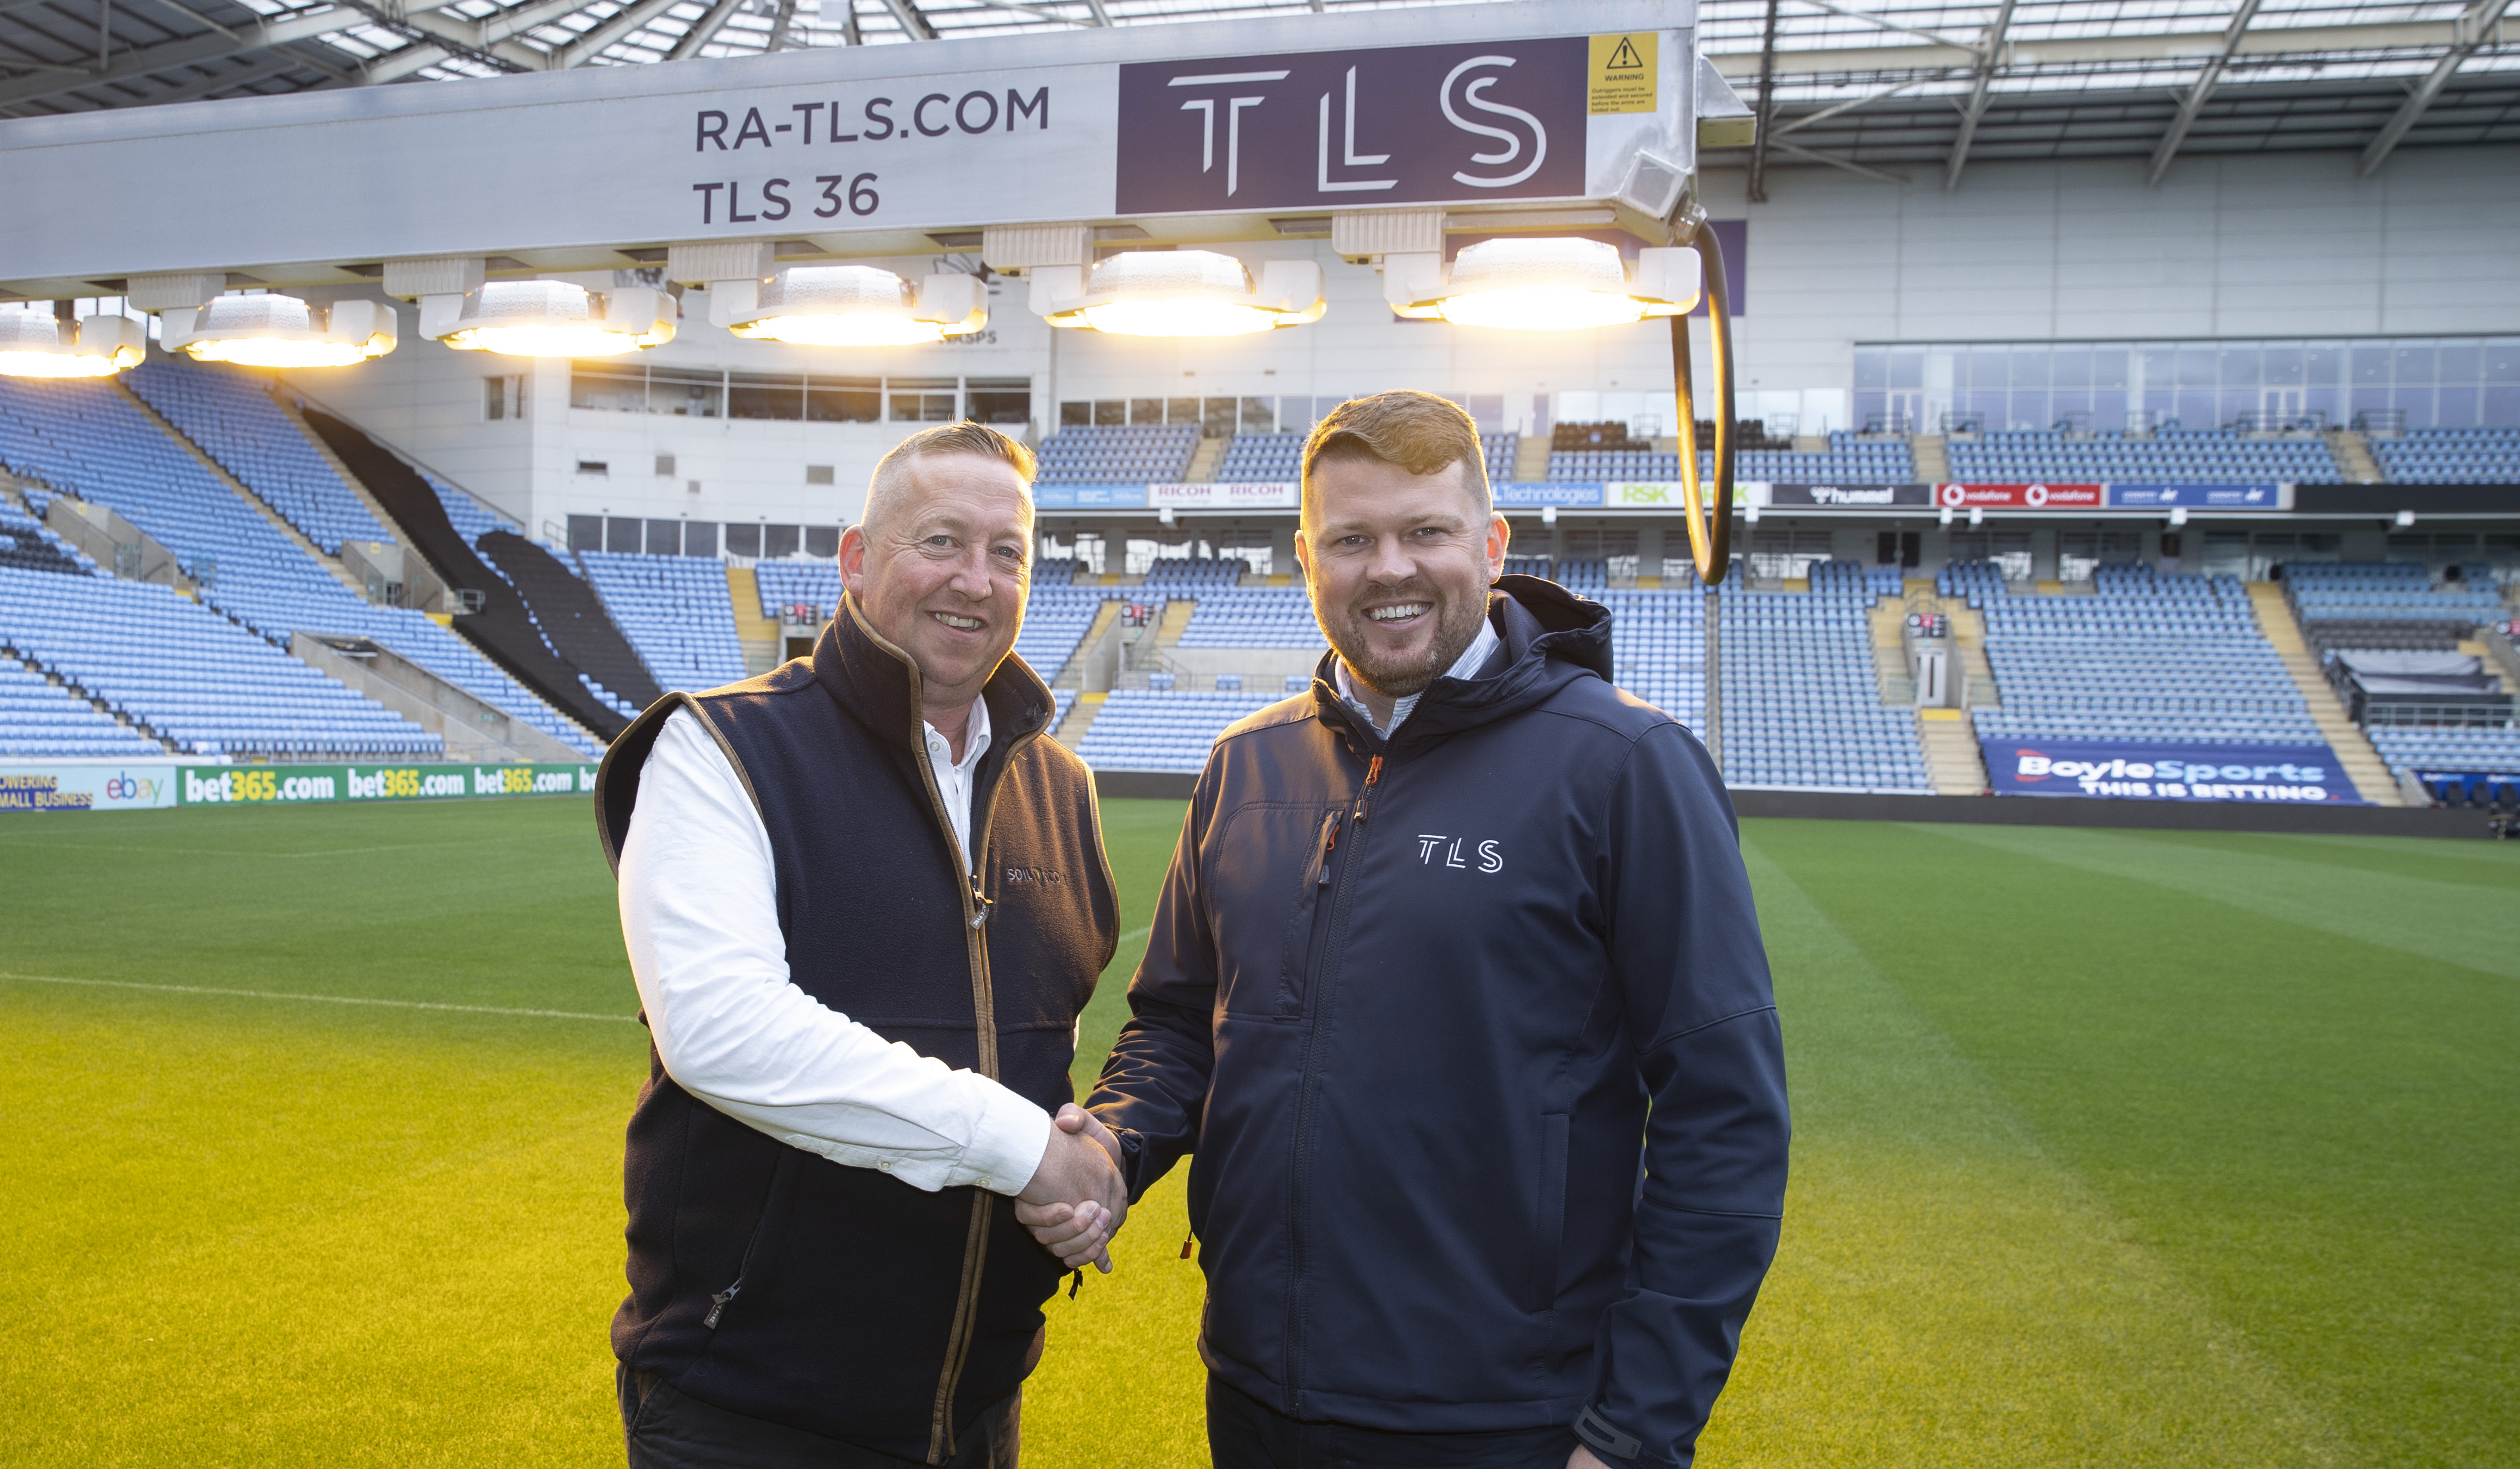 Soil Scout and TLS form exciting new strategic partnership